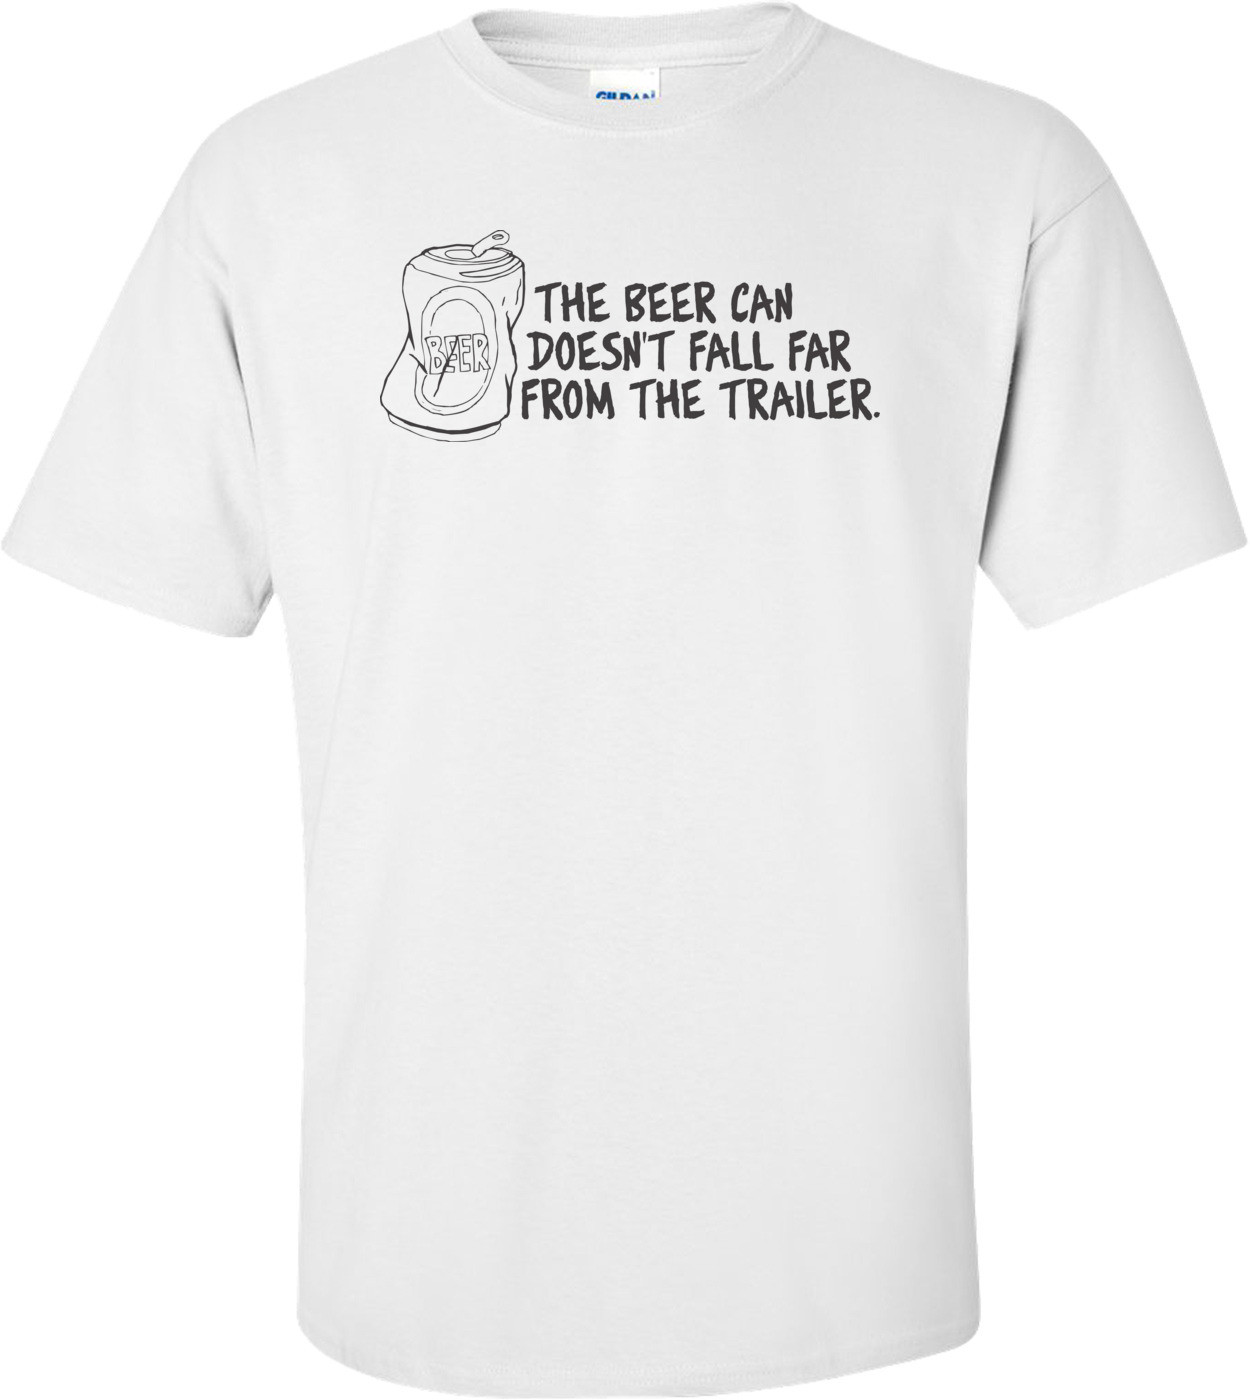 The Beer Can Doesn't Fall Far From The Trailer T-shirt